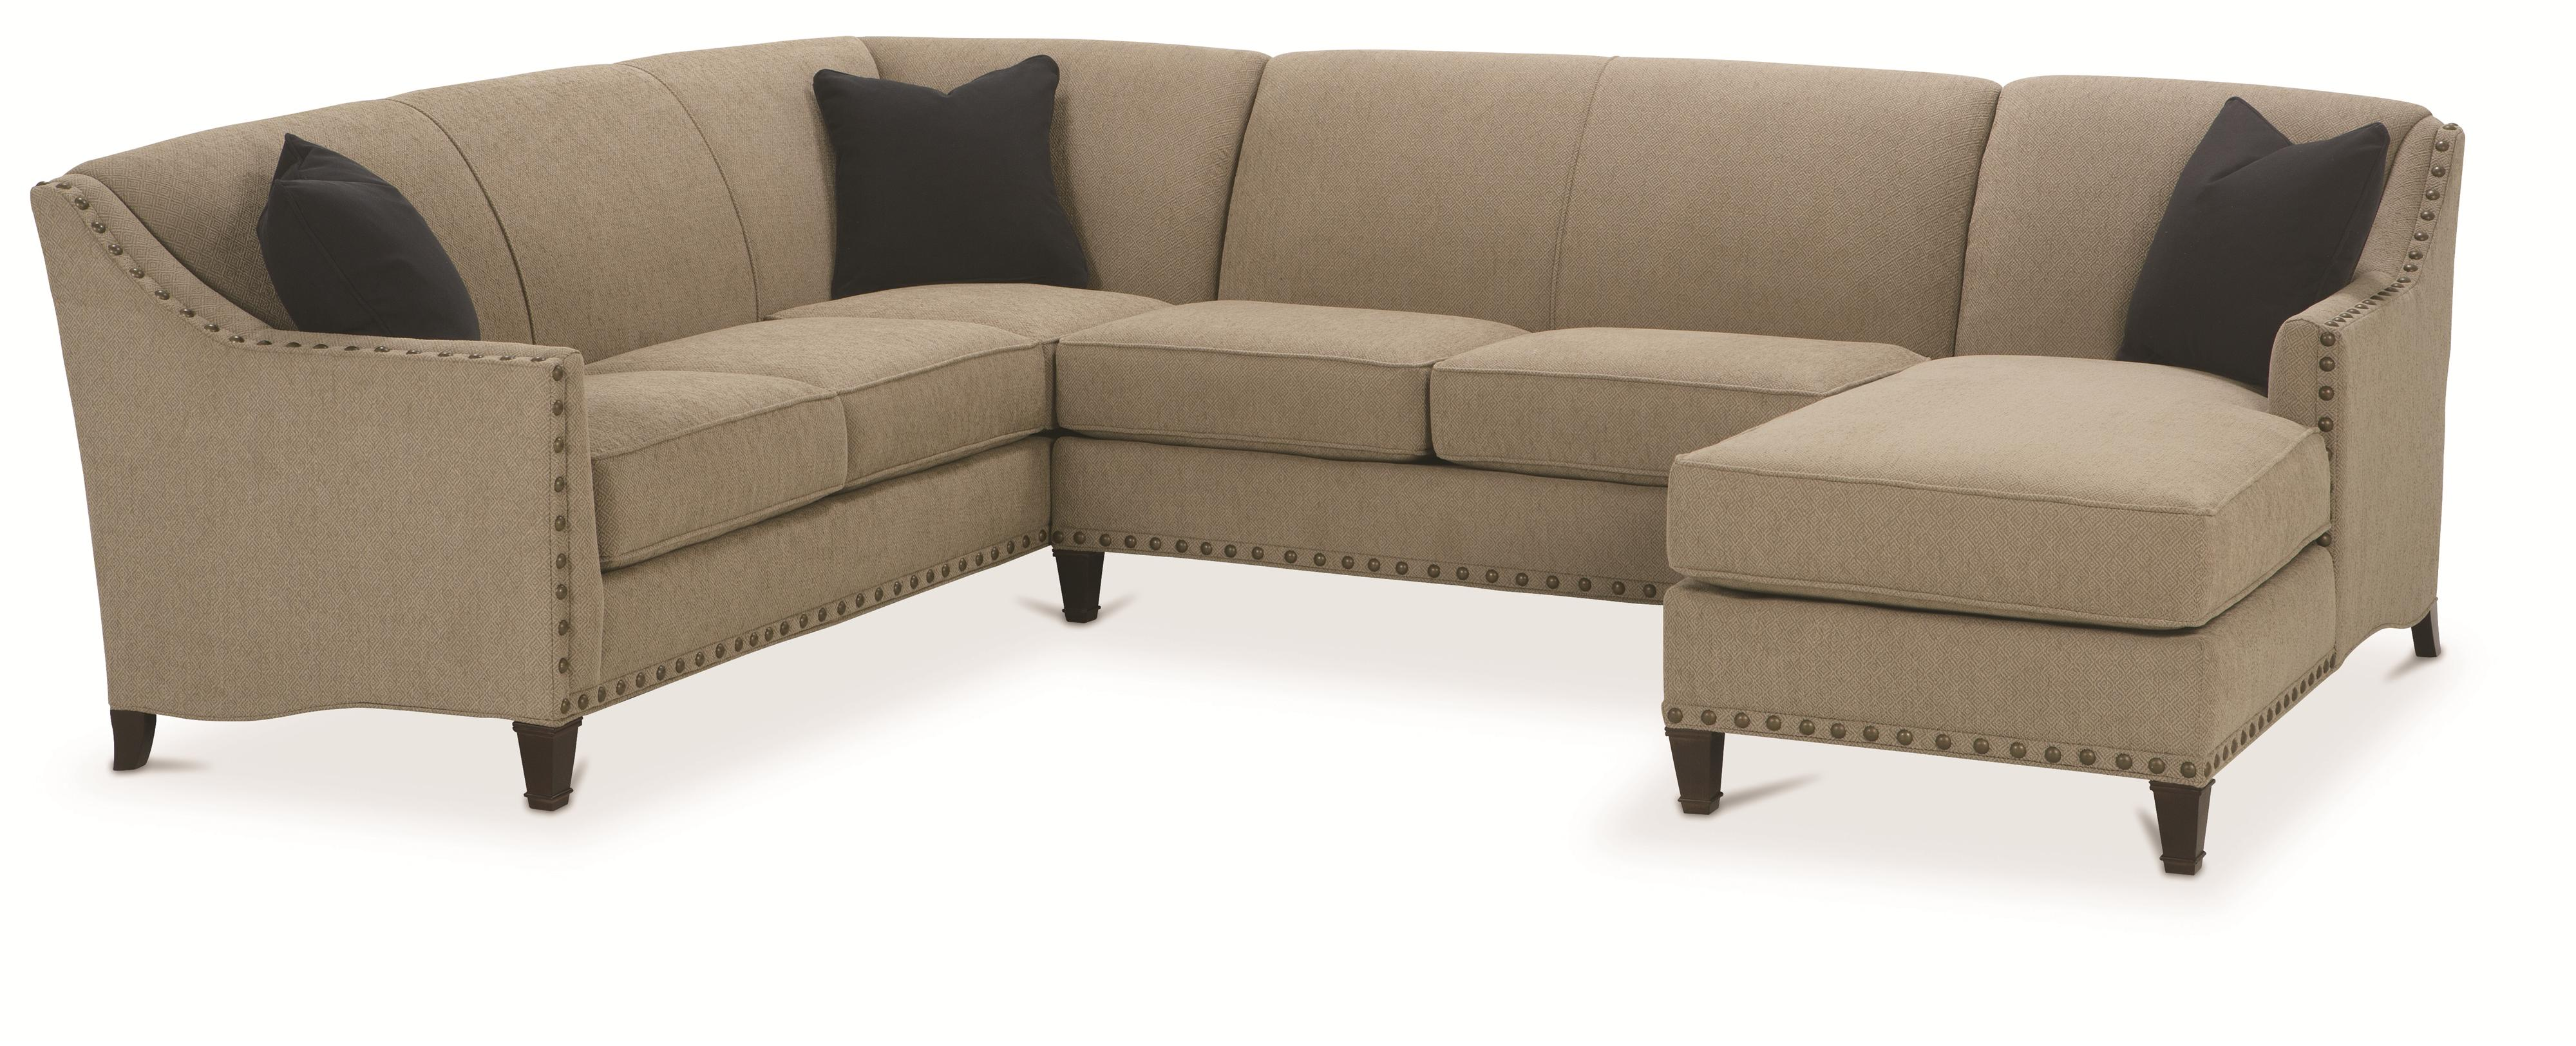 Rowe Rockford Traditional 3 Piece Sectional With Chaise   AHFA   Sofa  Sectional Dealer Locator